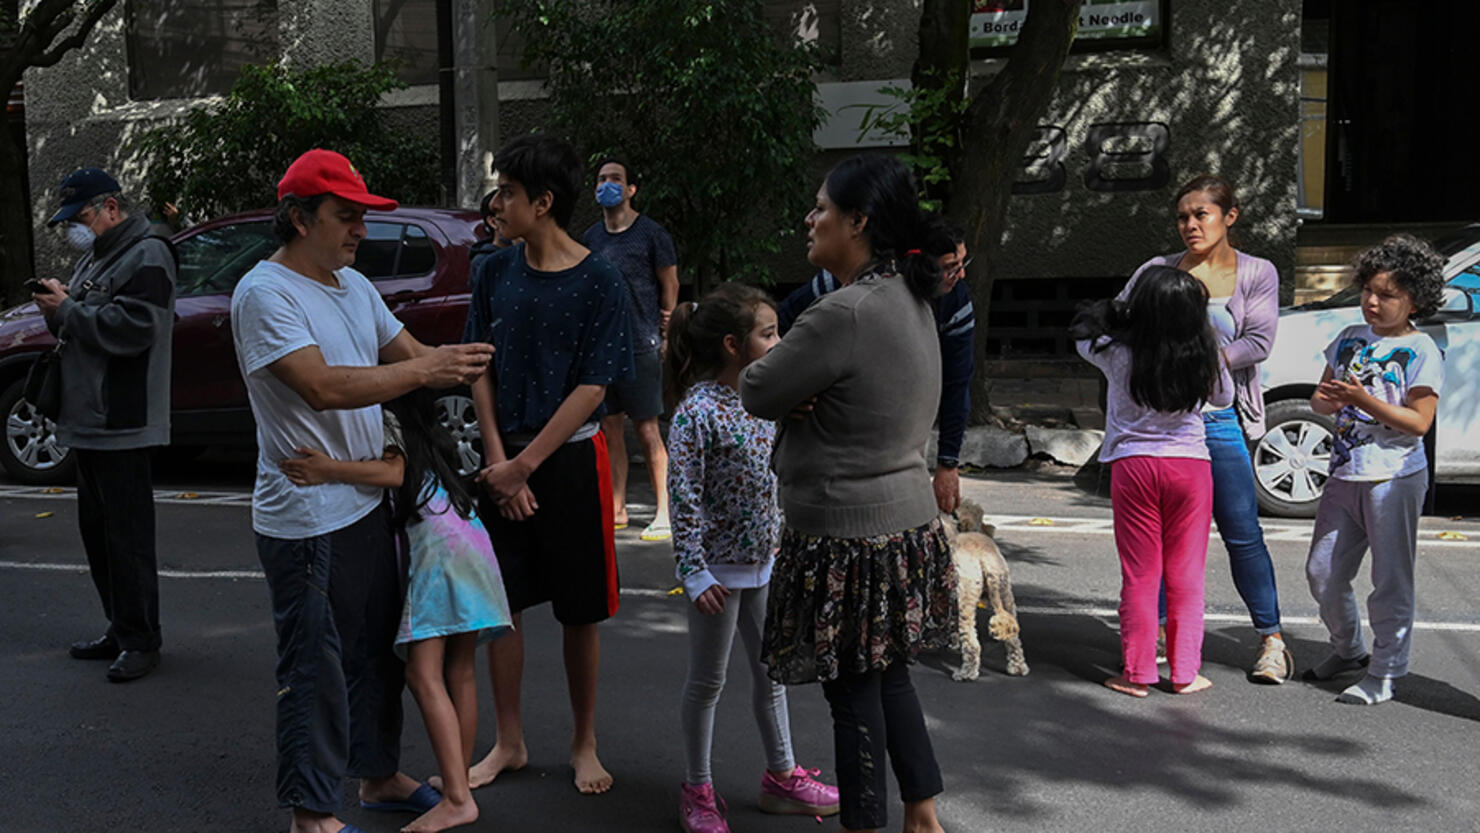 People are seen on a street during a quake in Mexico City, on June 23, 2020. - A 7.1 magnitude quake was registered Tuesday in the south of Mexico, according to the Mexican National Seismological Service. (Photo by RODRIGO ARANGUA / AFP) (Photo by RODRIGO